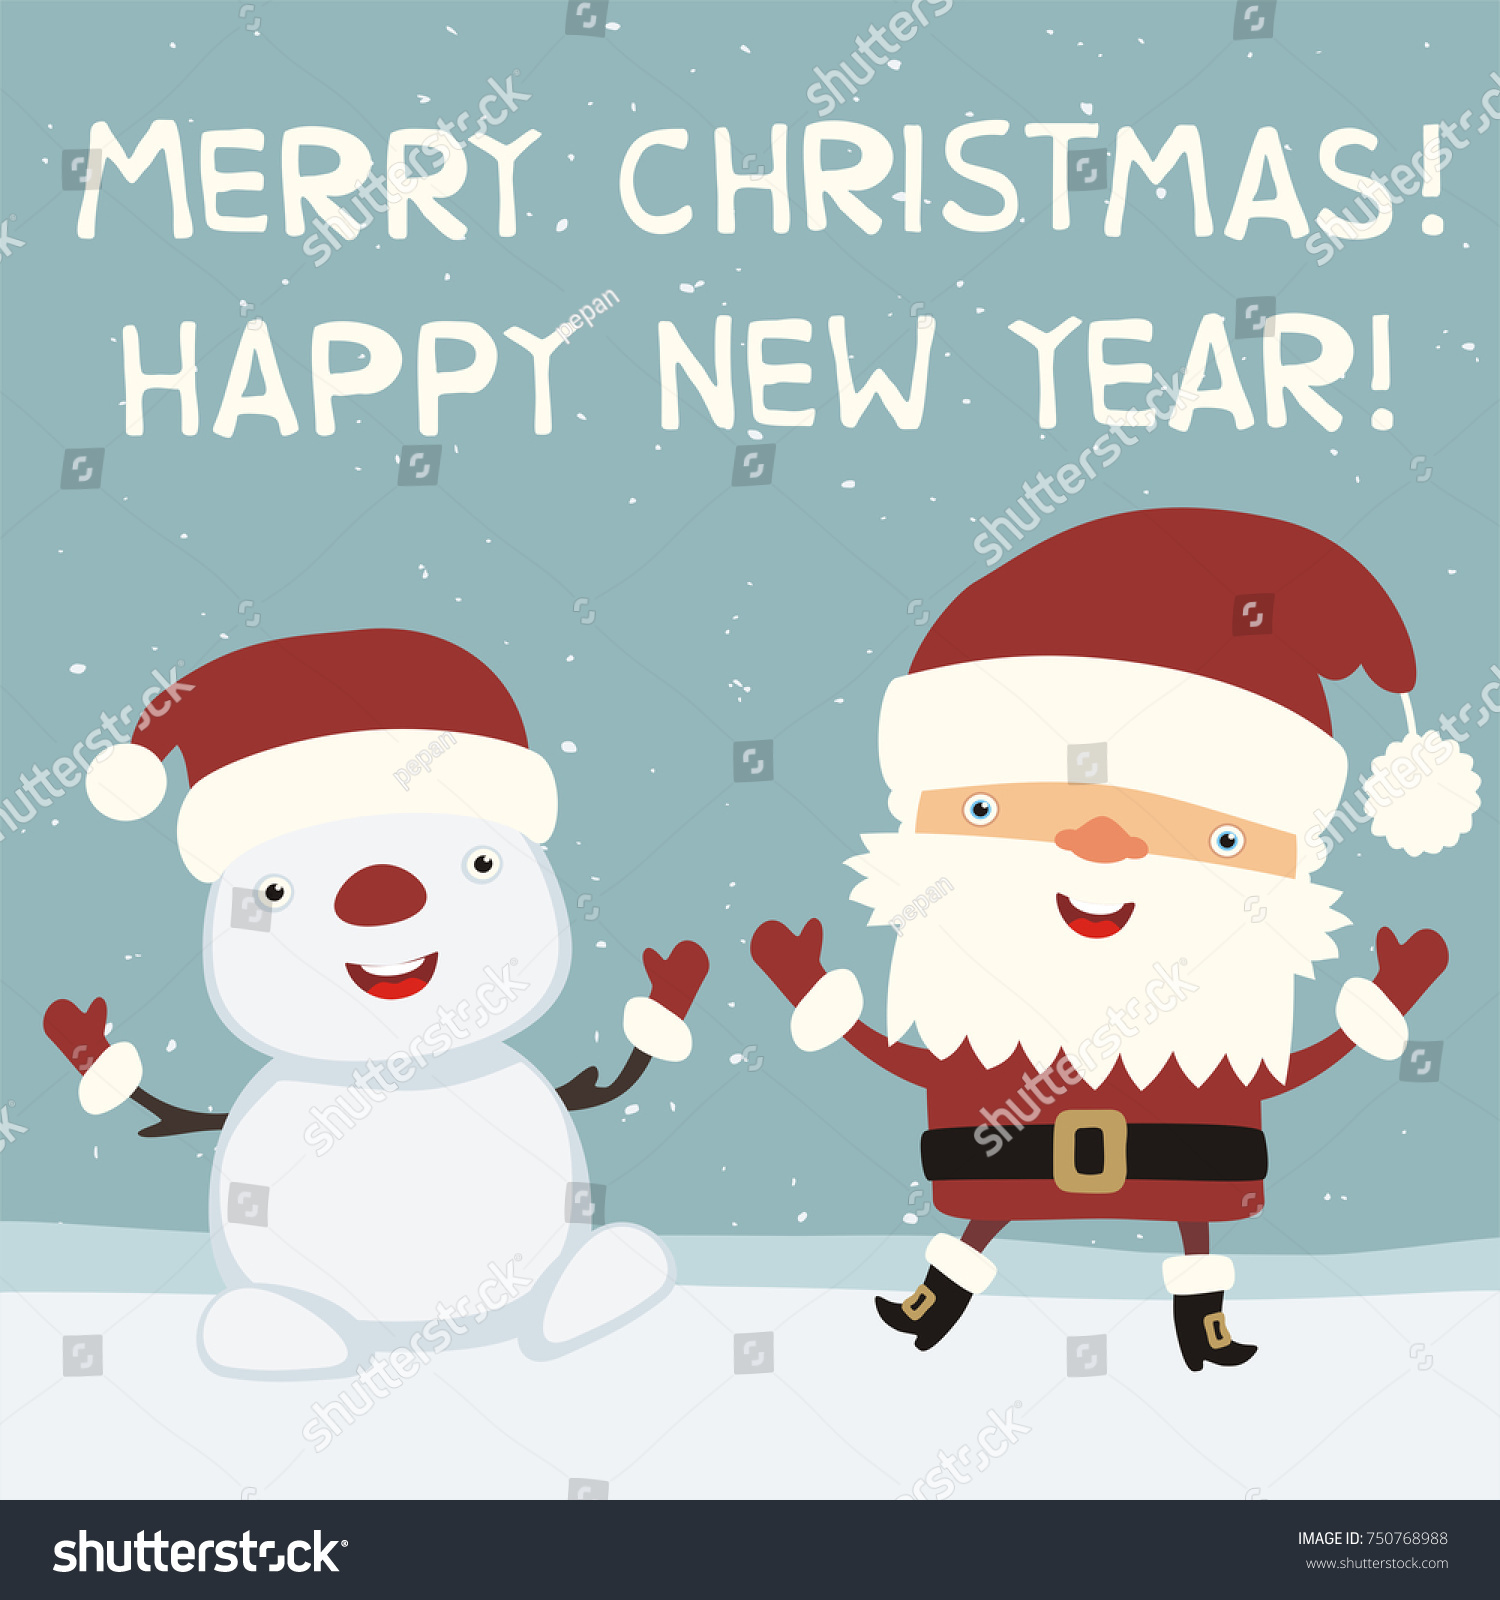 Merry Christmas And Happy New Year! Funny Santa Claus Dancing With Snowman.  Greeting Card